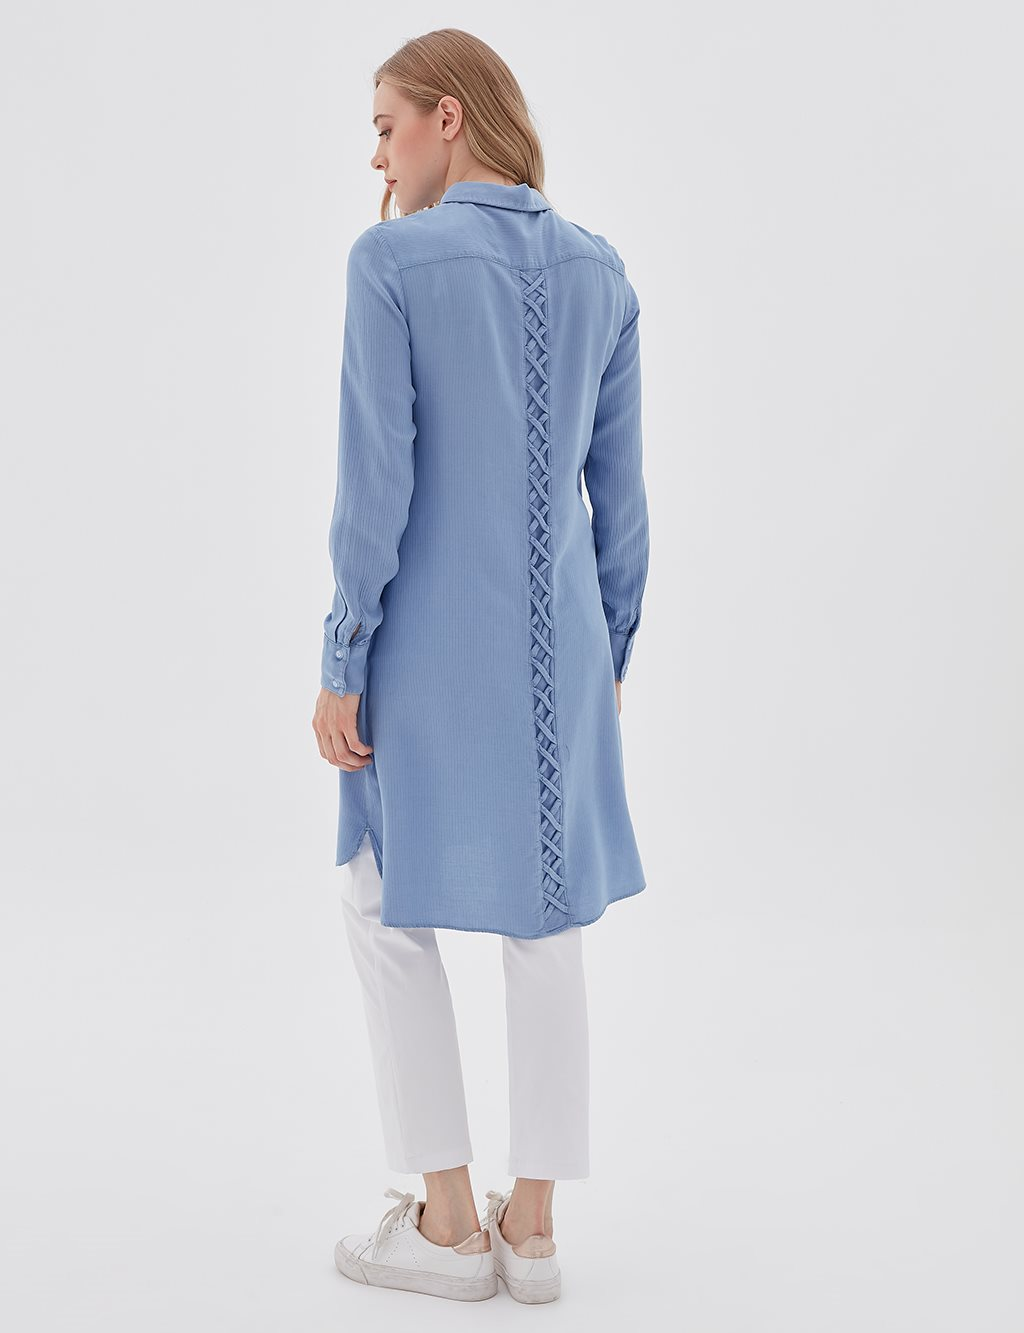 Detailed Striped Tunic Blue B20 21098